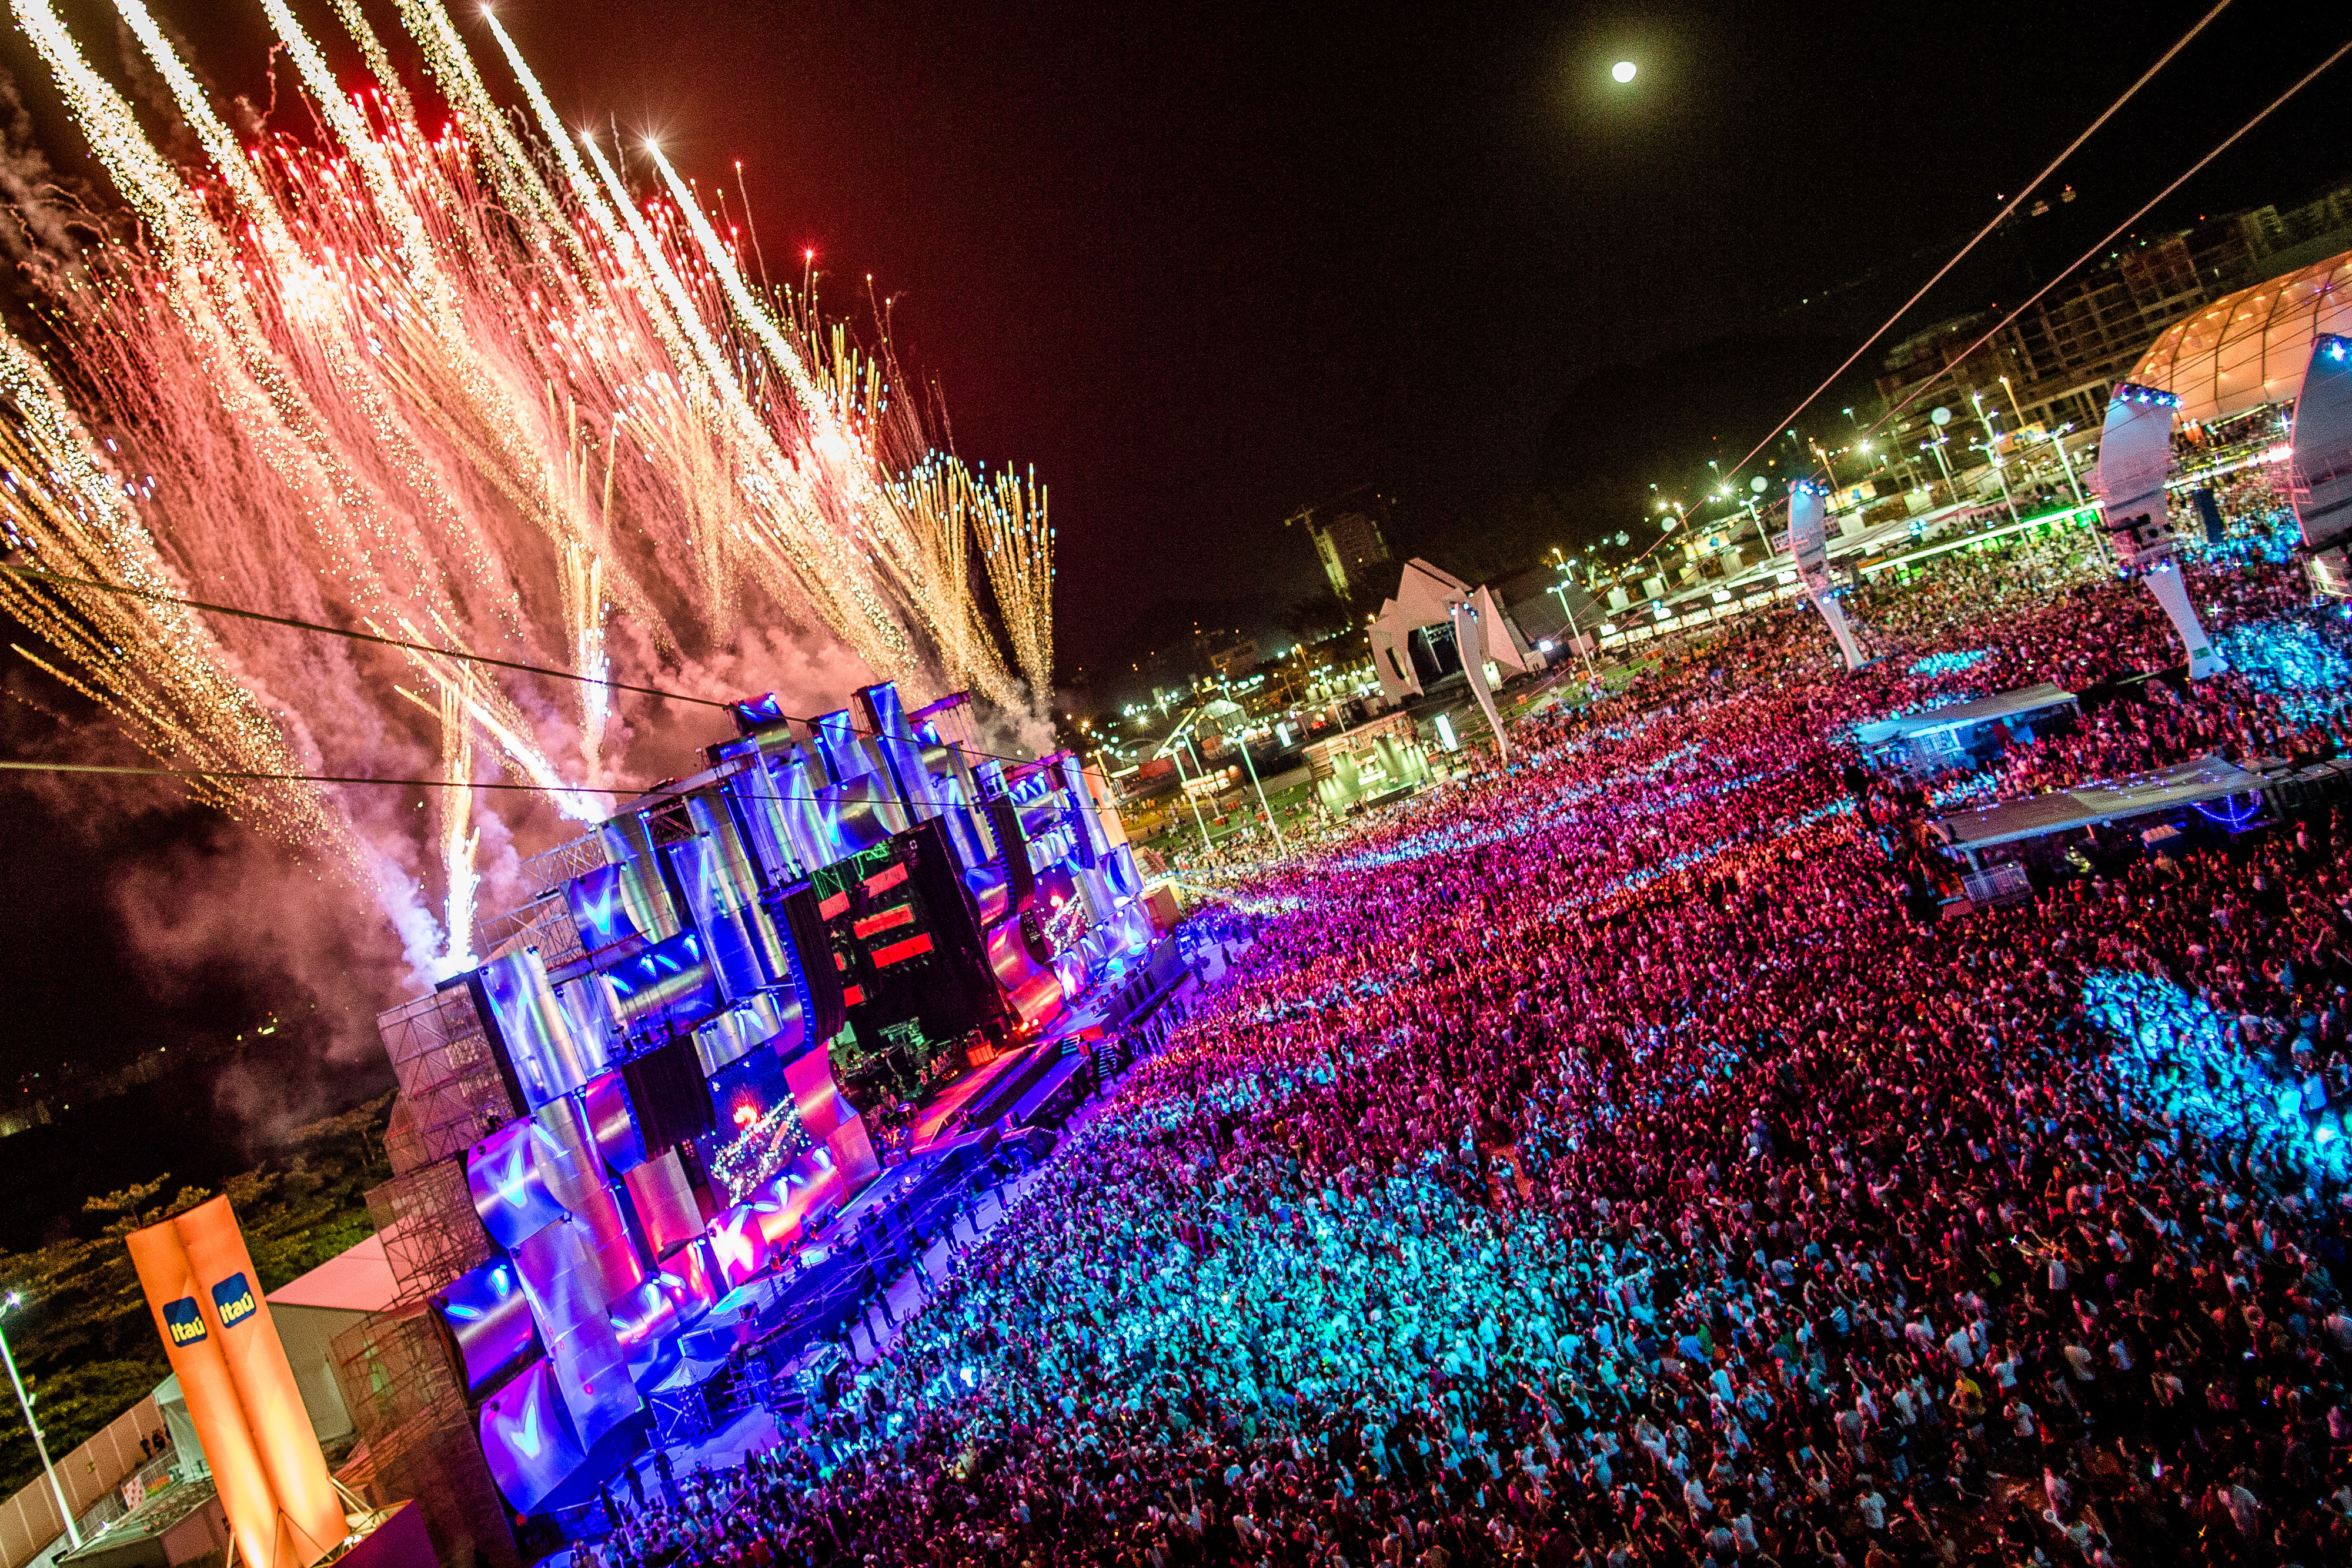 A spectacular firework and music display during Rock in Rio's 2013 festival in Rio de Janeiro, Brazil, which entertained a crowd of nearly 600,000 people. A similar experience can be expected at Rock in Rio USA in May 2015. (Photo: Business Wire)